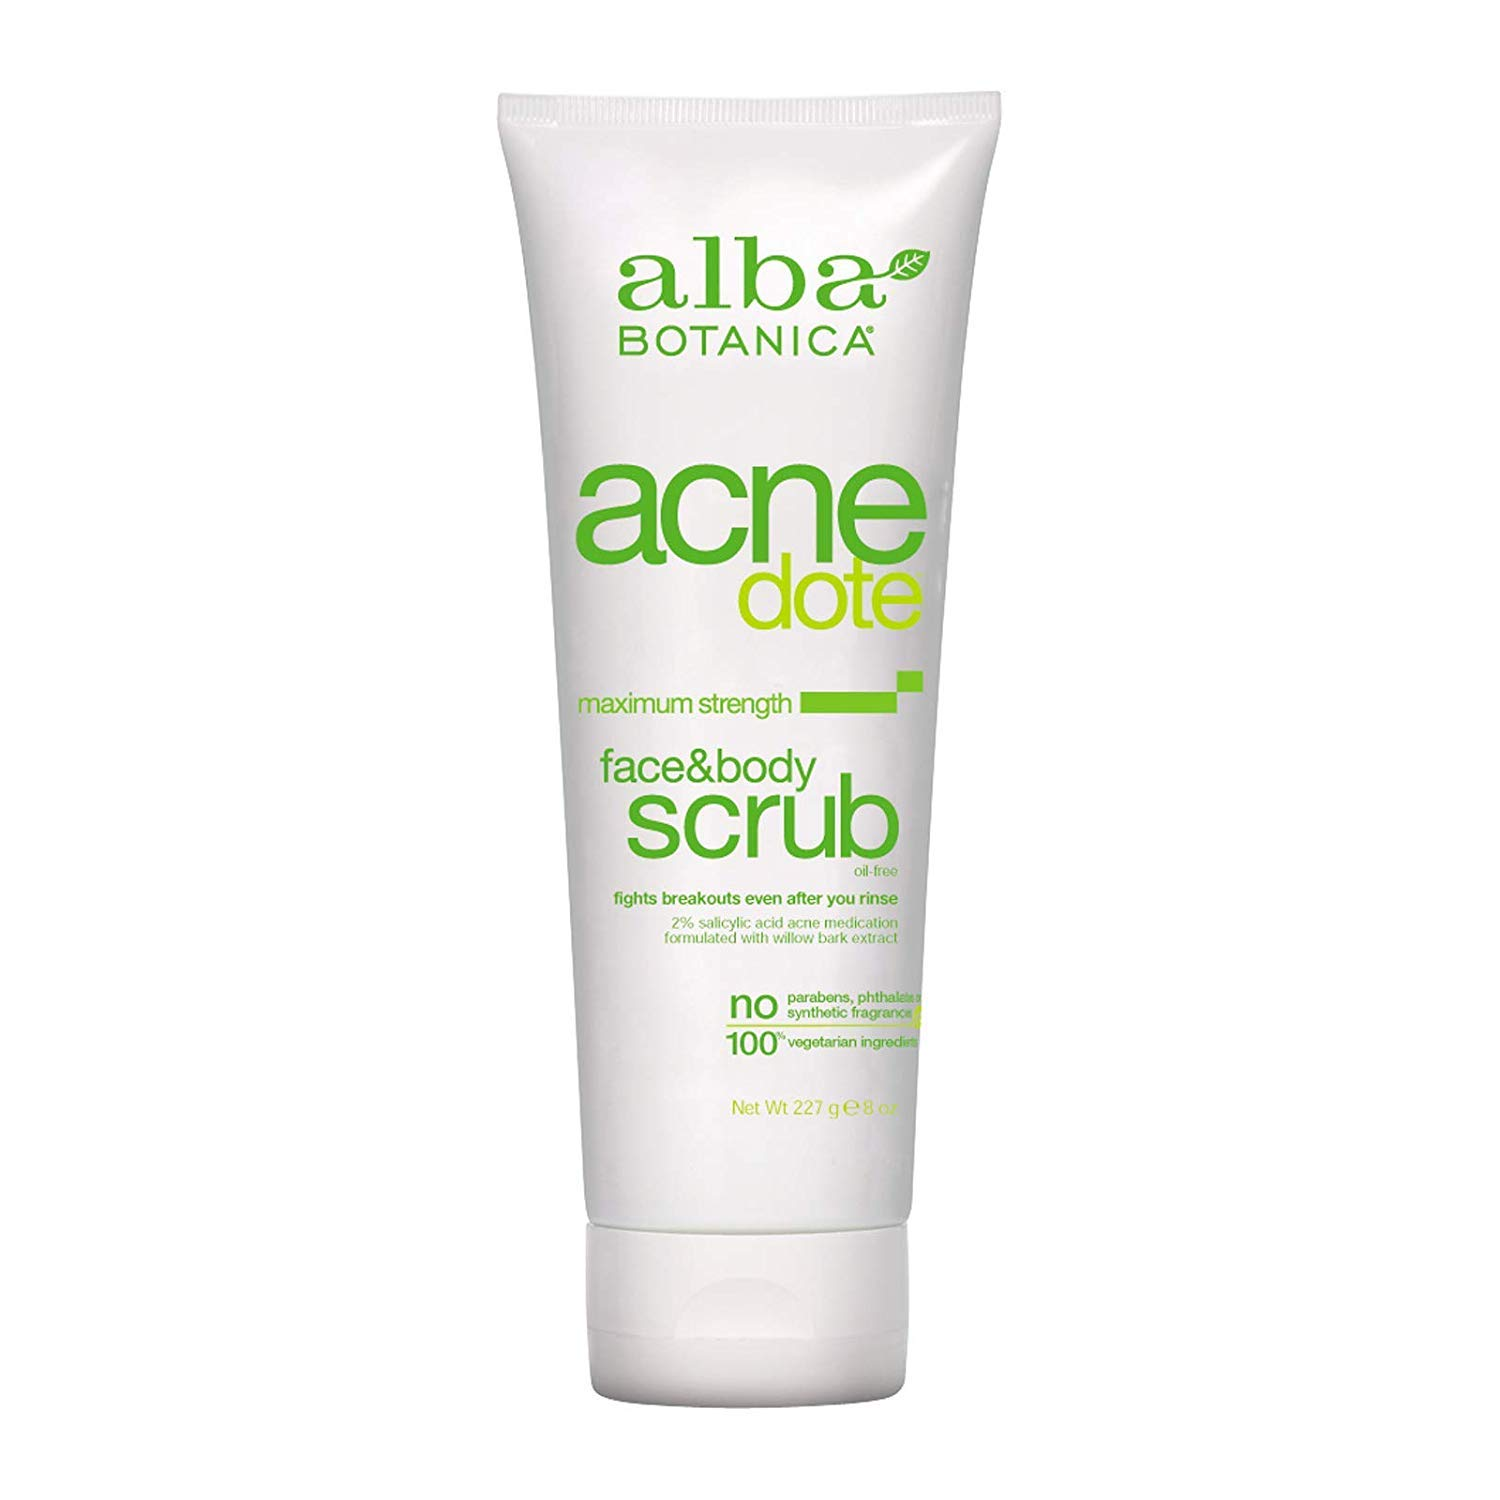 Acne Body Washes - Best Products in 2020 14